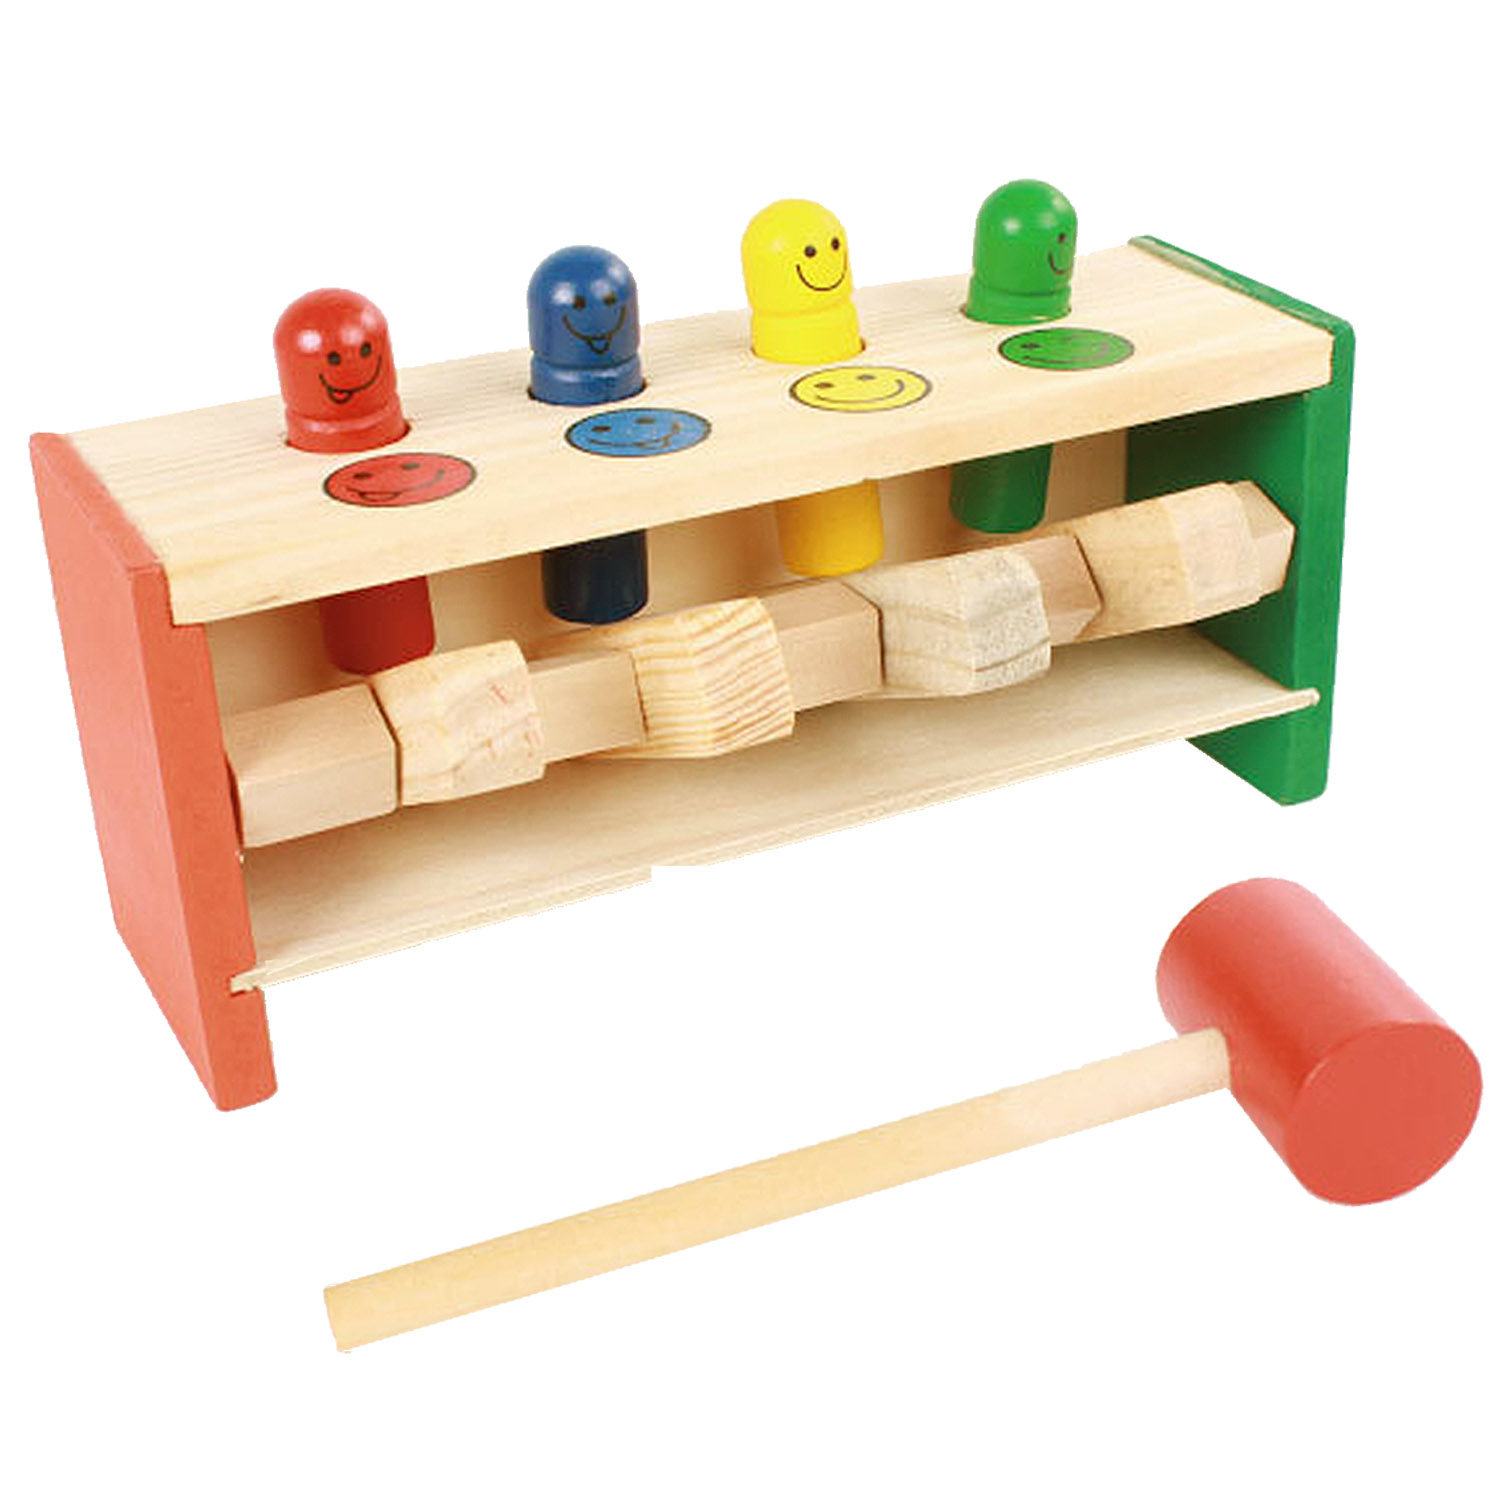 Kid Baby Toddler Wooden Toy Colorful Smile Face Pegs Wooden Pounding Bench With Hammer Educational Wooden Pound Beating Toy